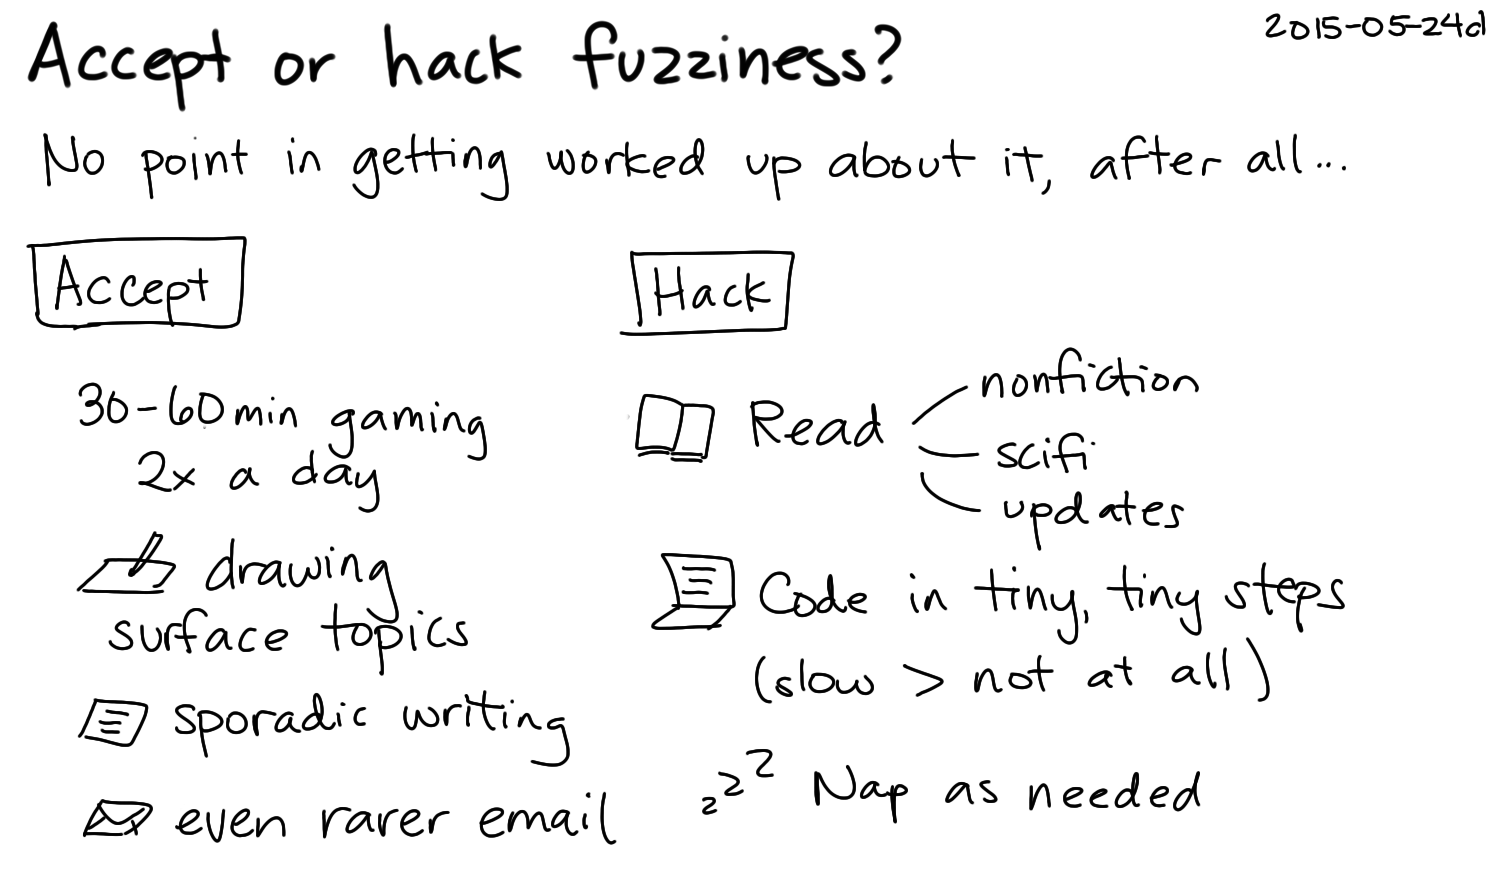 2015-05-24d Accept or hack fuzziness -- index card #fuzzy.png